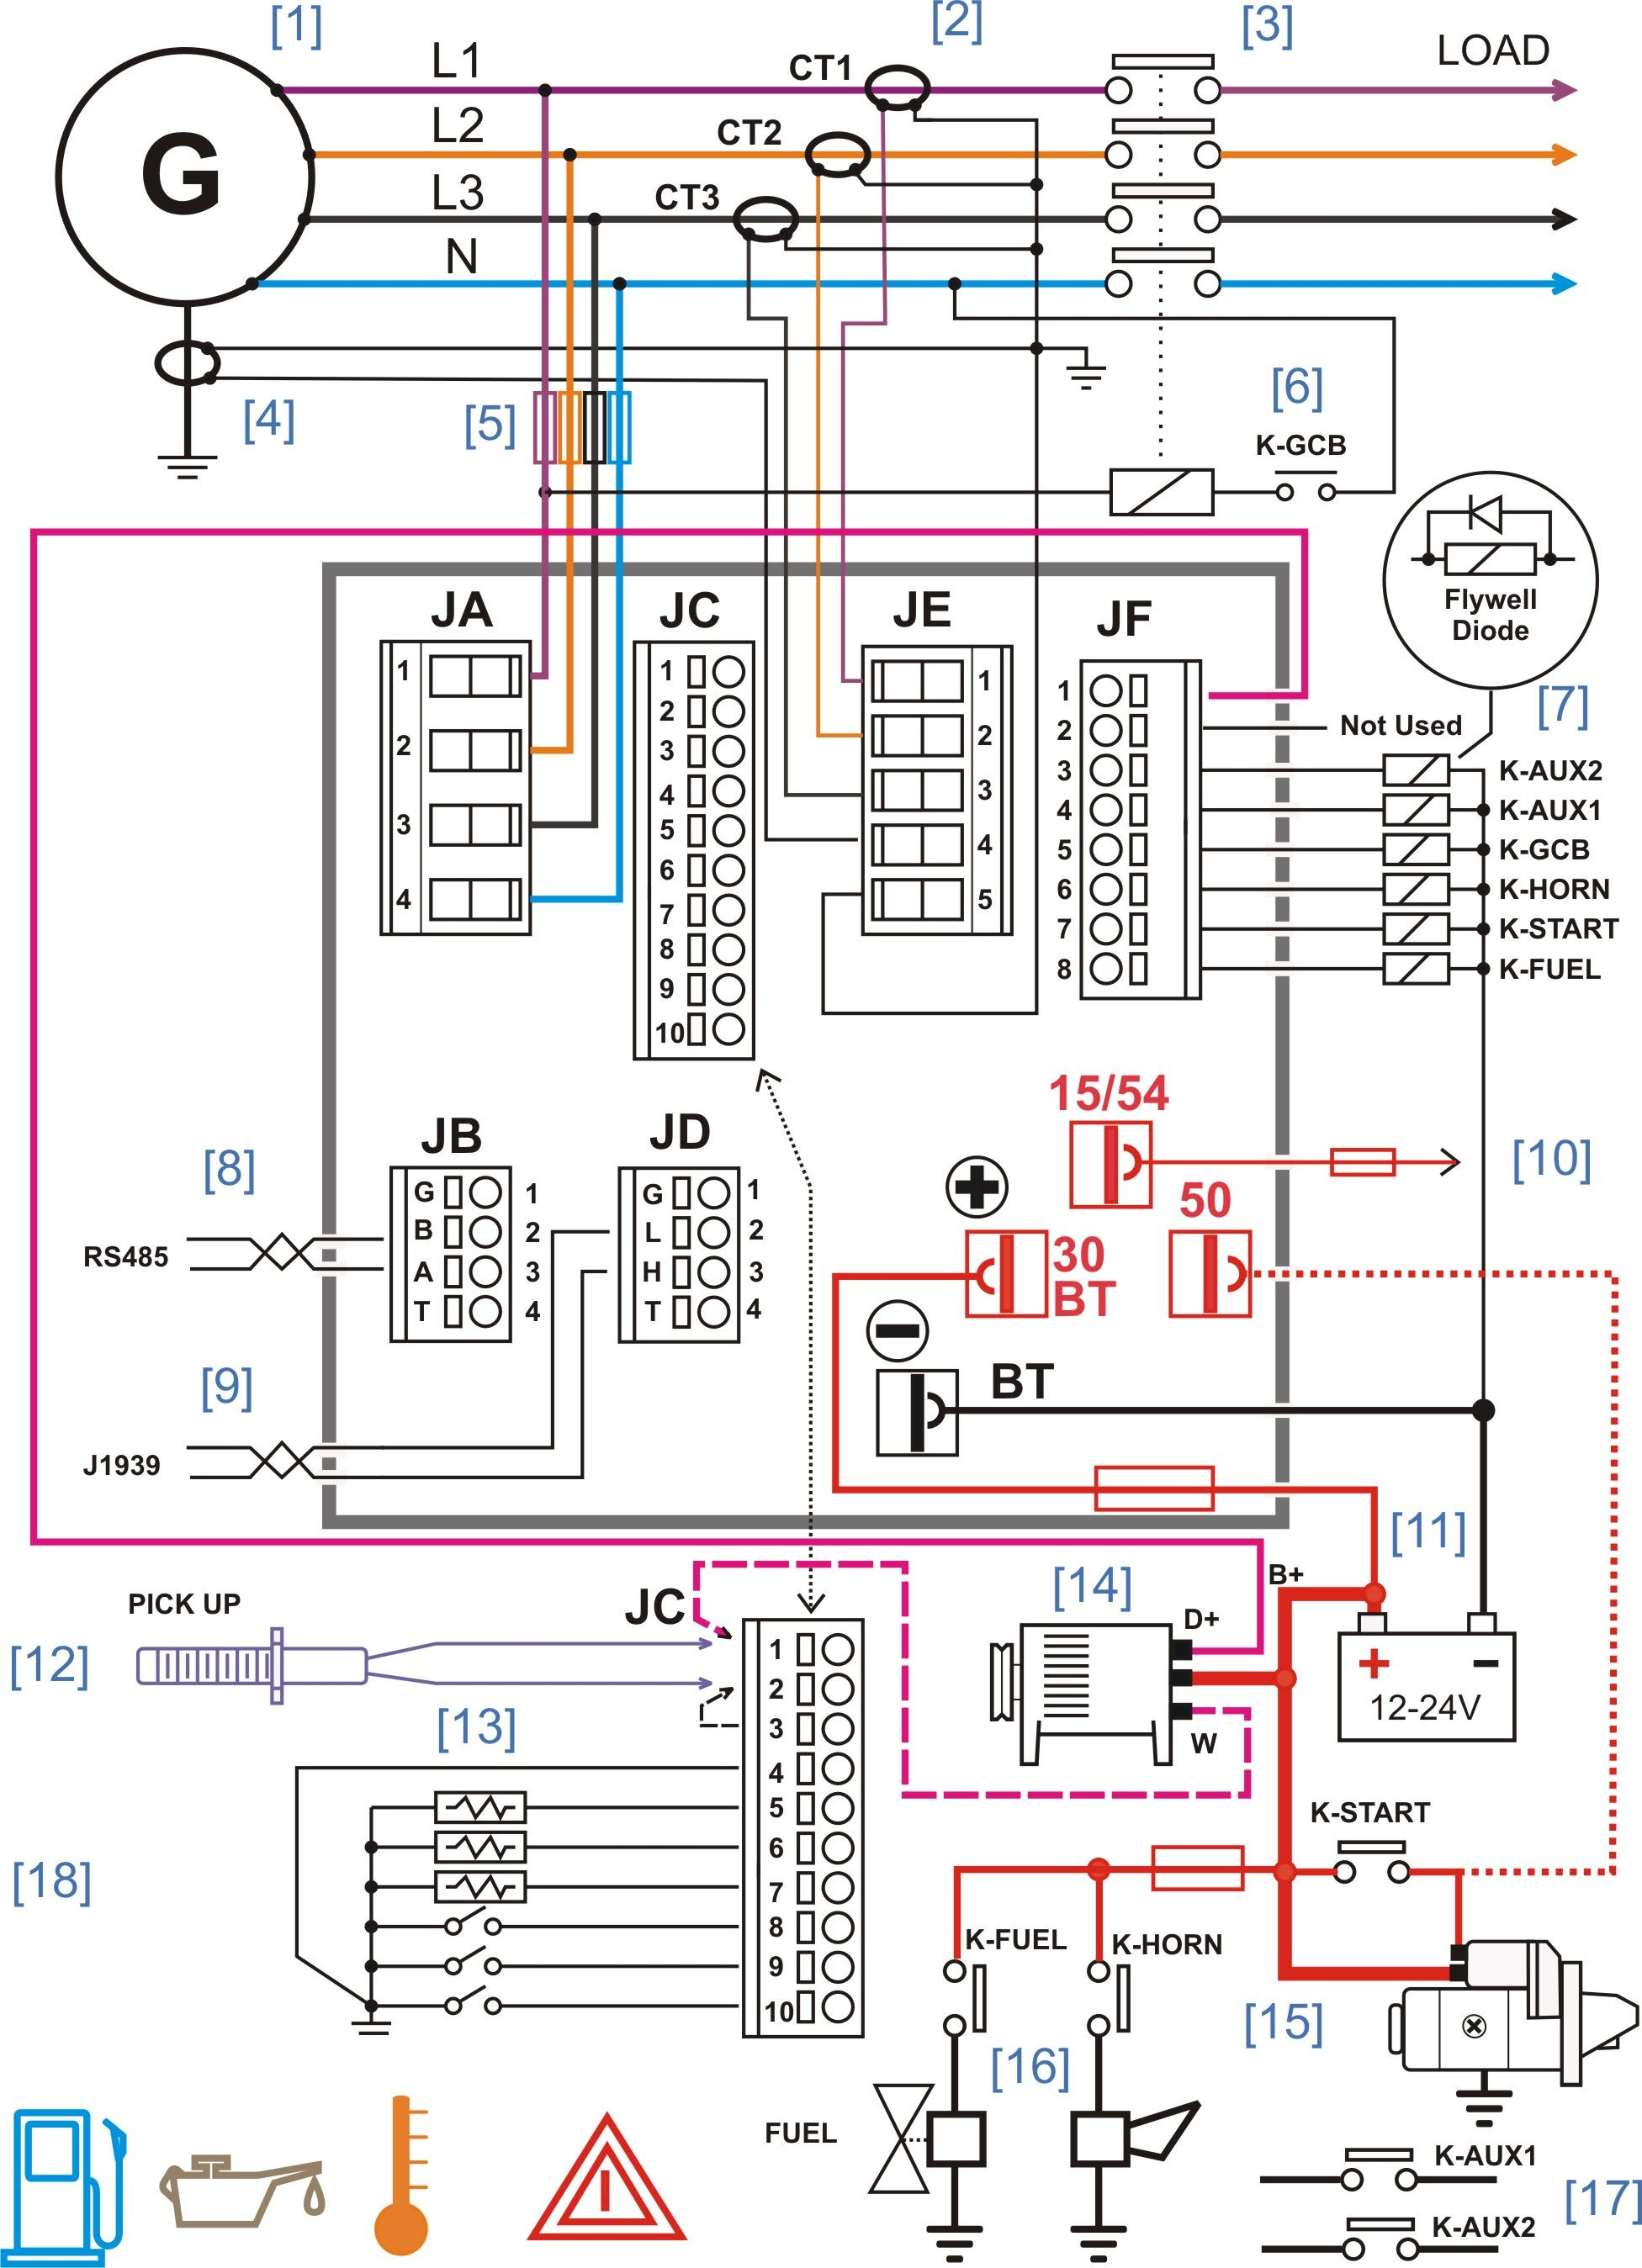 control panel wiring diagrams wiring diagram data schema Pump Mechanical Seal Diagram diesel generator control panel wiring diagram diesel generators in control panel wiring diagrams control panel wiring diagrams